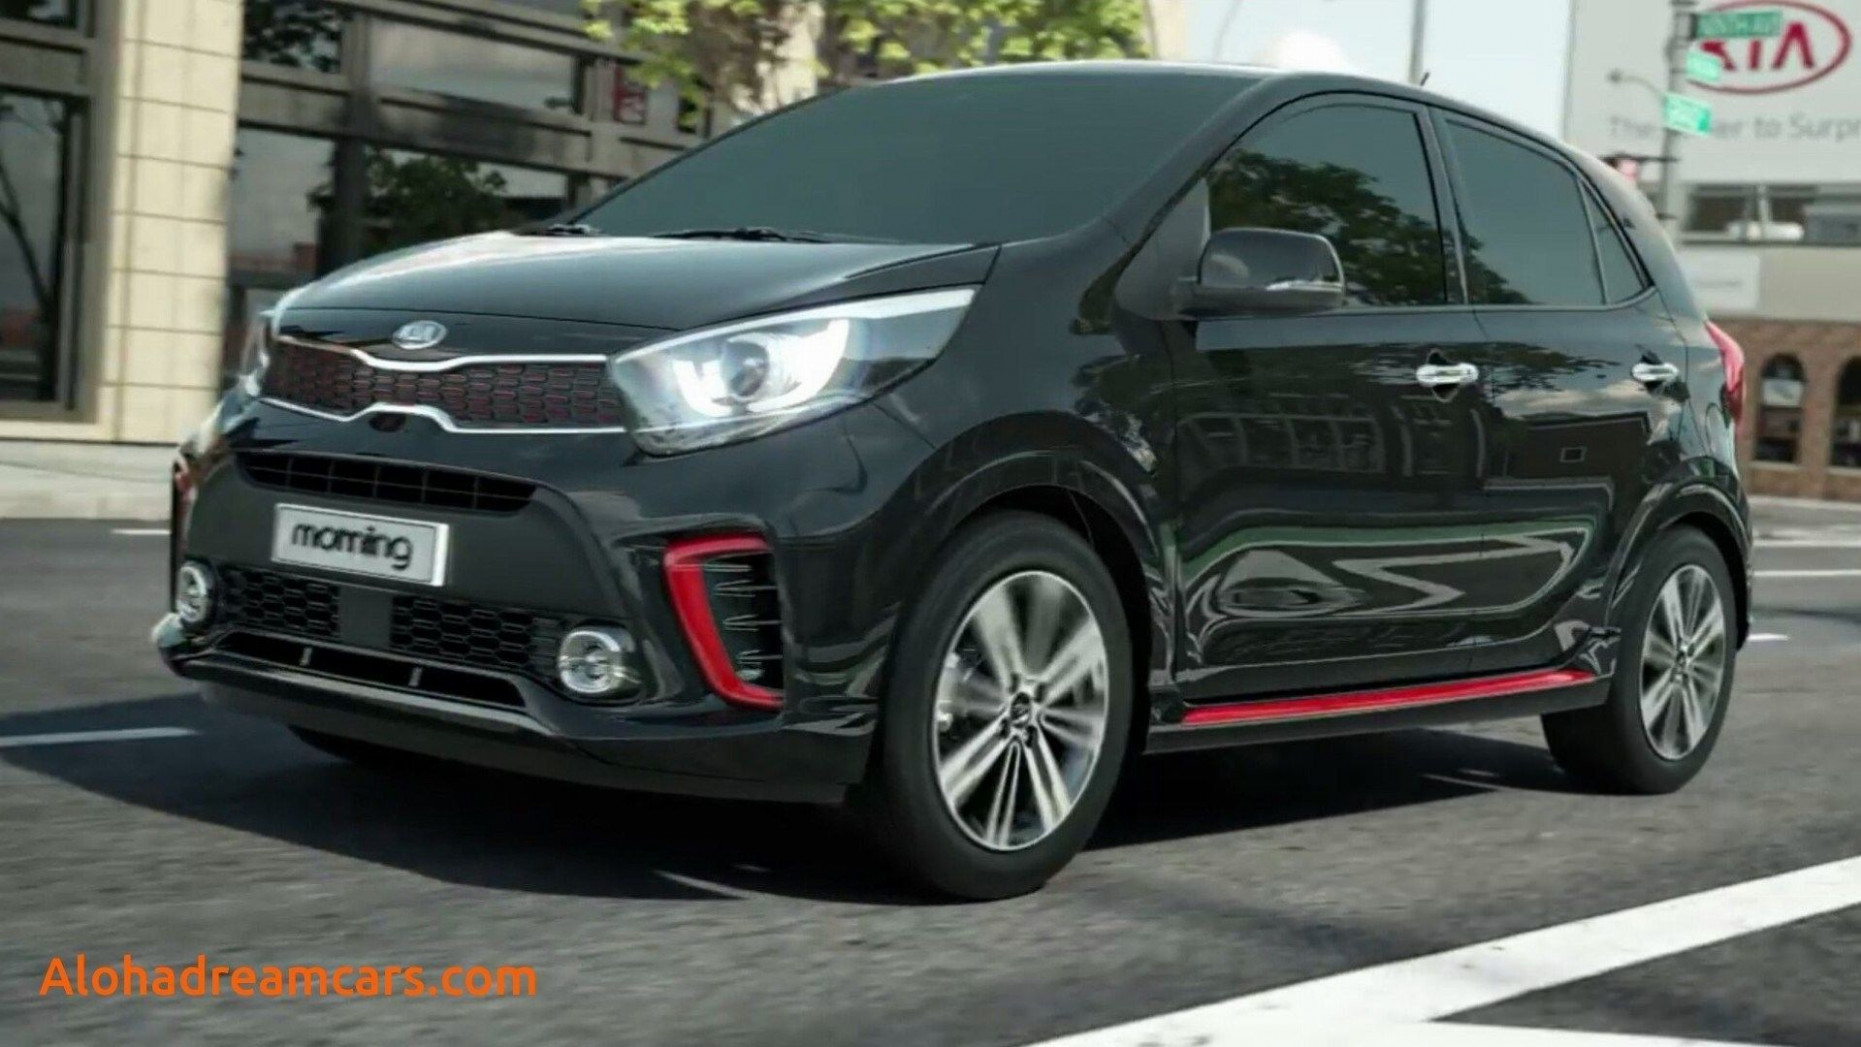 8+ kia picanto 8 price New Review - kia picanto 2020 price in lebanon